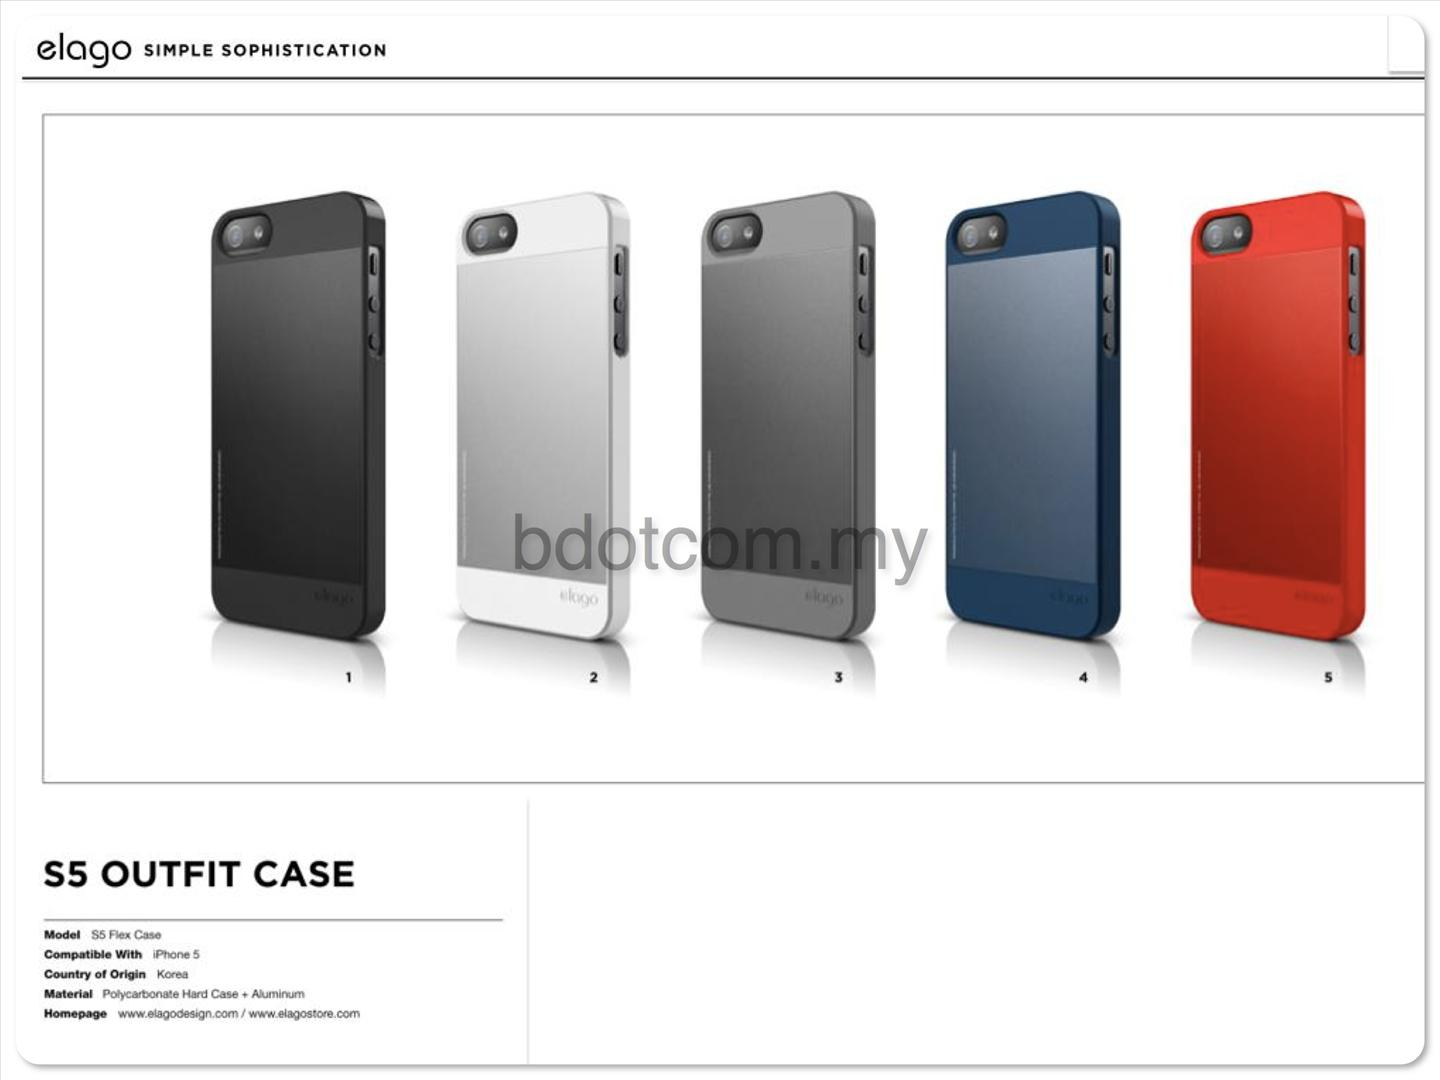 Bdotcom = Apple iPhone 5 Elago S5 OutFit Case